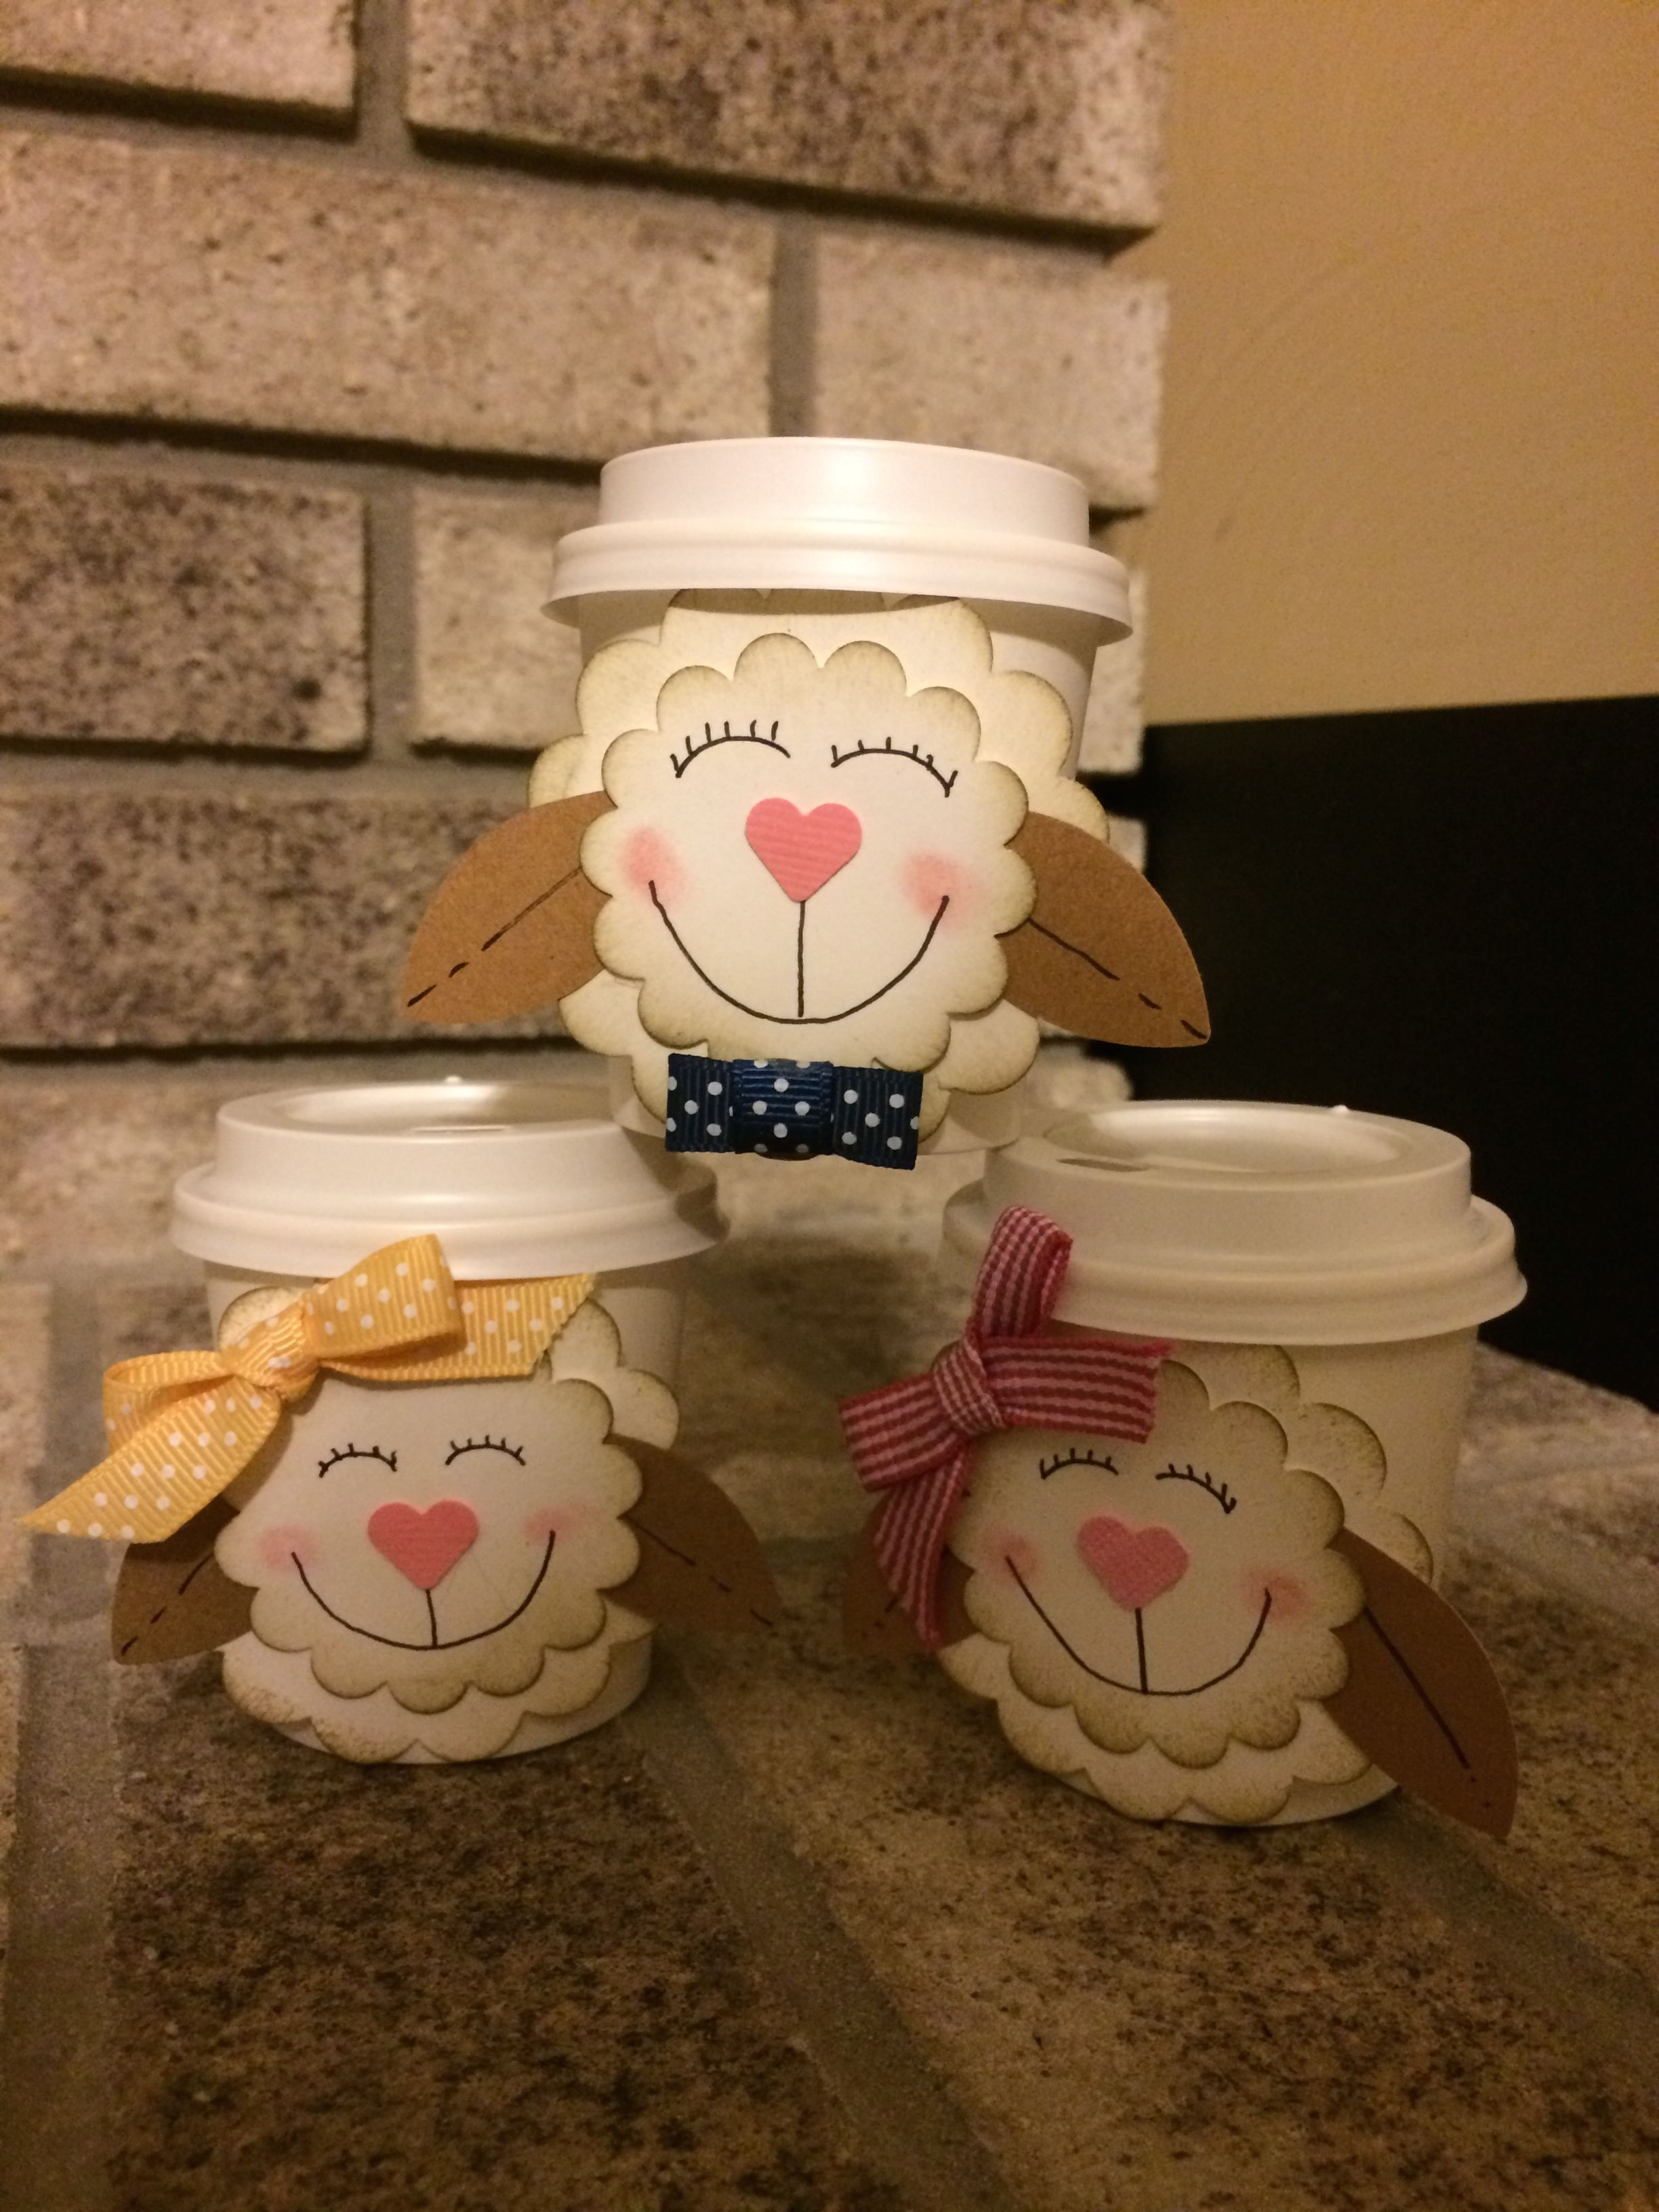 Lamb Mini Coffee Cup Designs by Dianne at Delightful